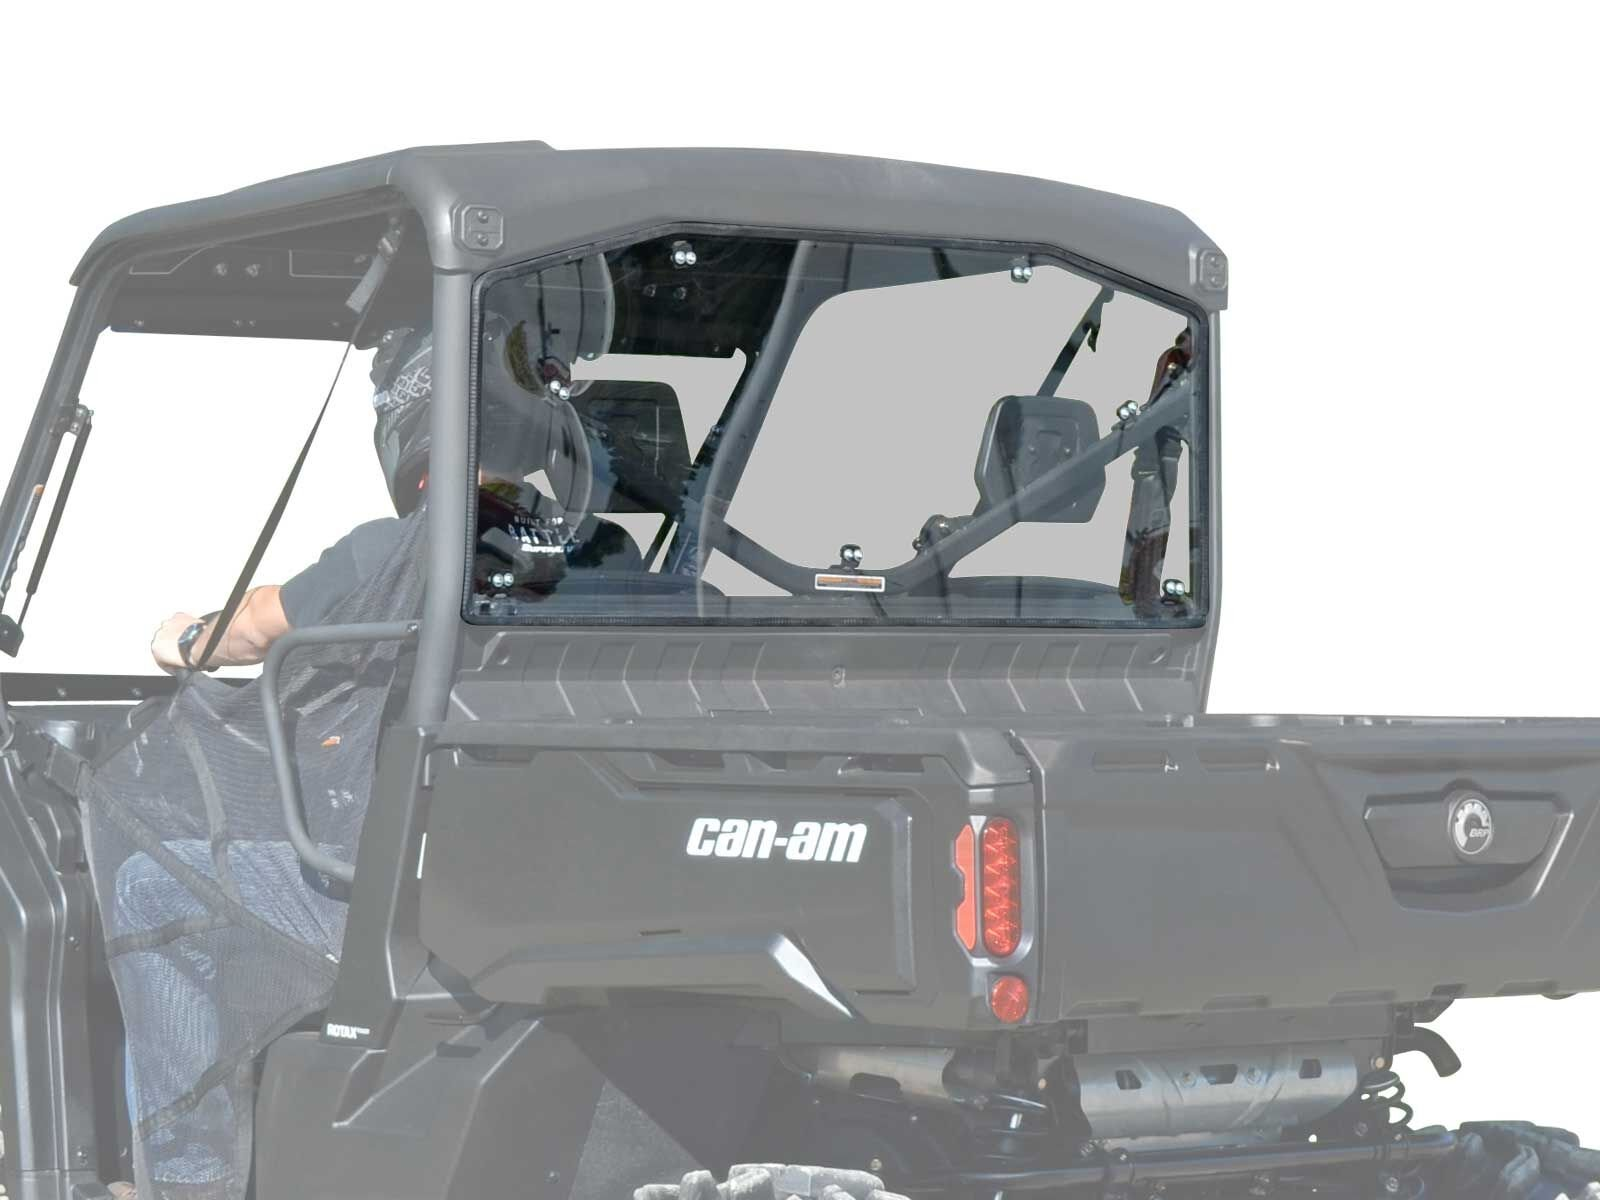 SuperATV Heavy Duty Rear Windshield fir Can-Am Defender (2016+) - Dark Tinted Standard Polycarbonate - Easy to Install!